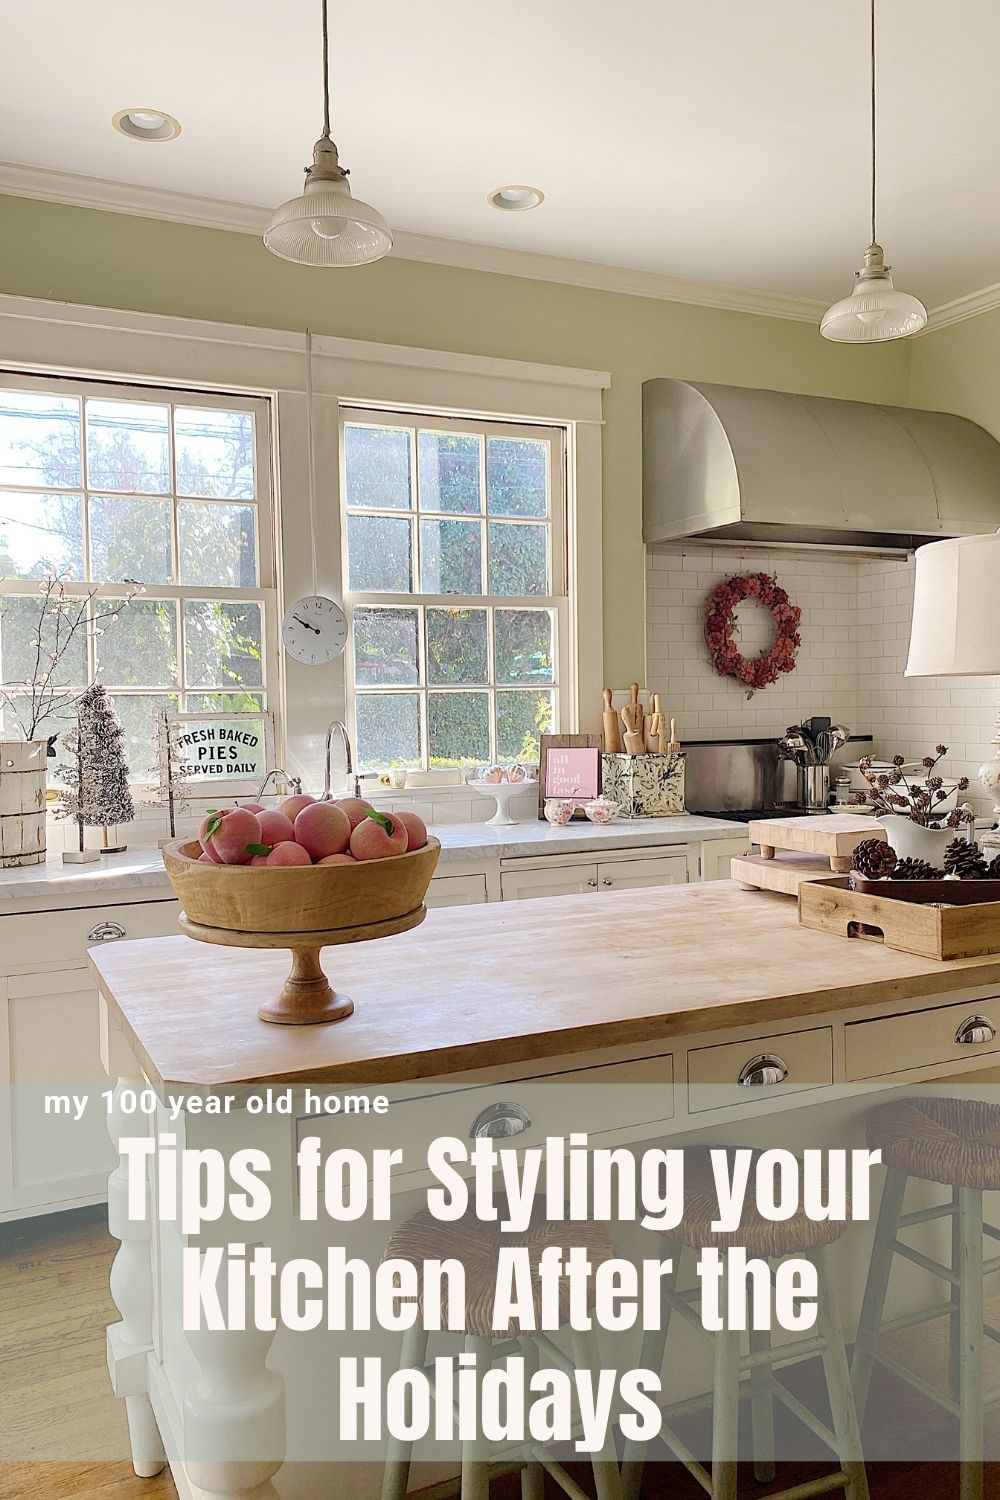 Today I am sharing some tips for styling your kitchen after the holidays. I love this transformation using color and some of my holiday decor.